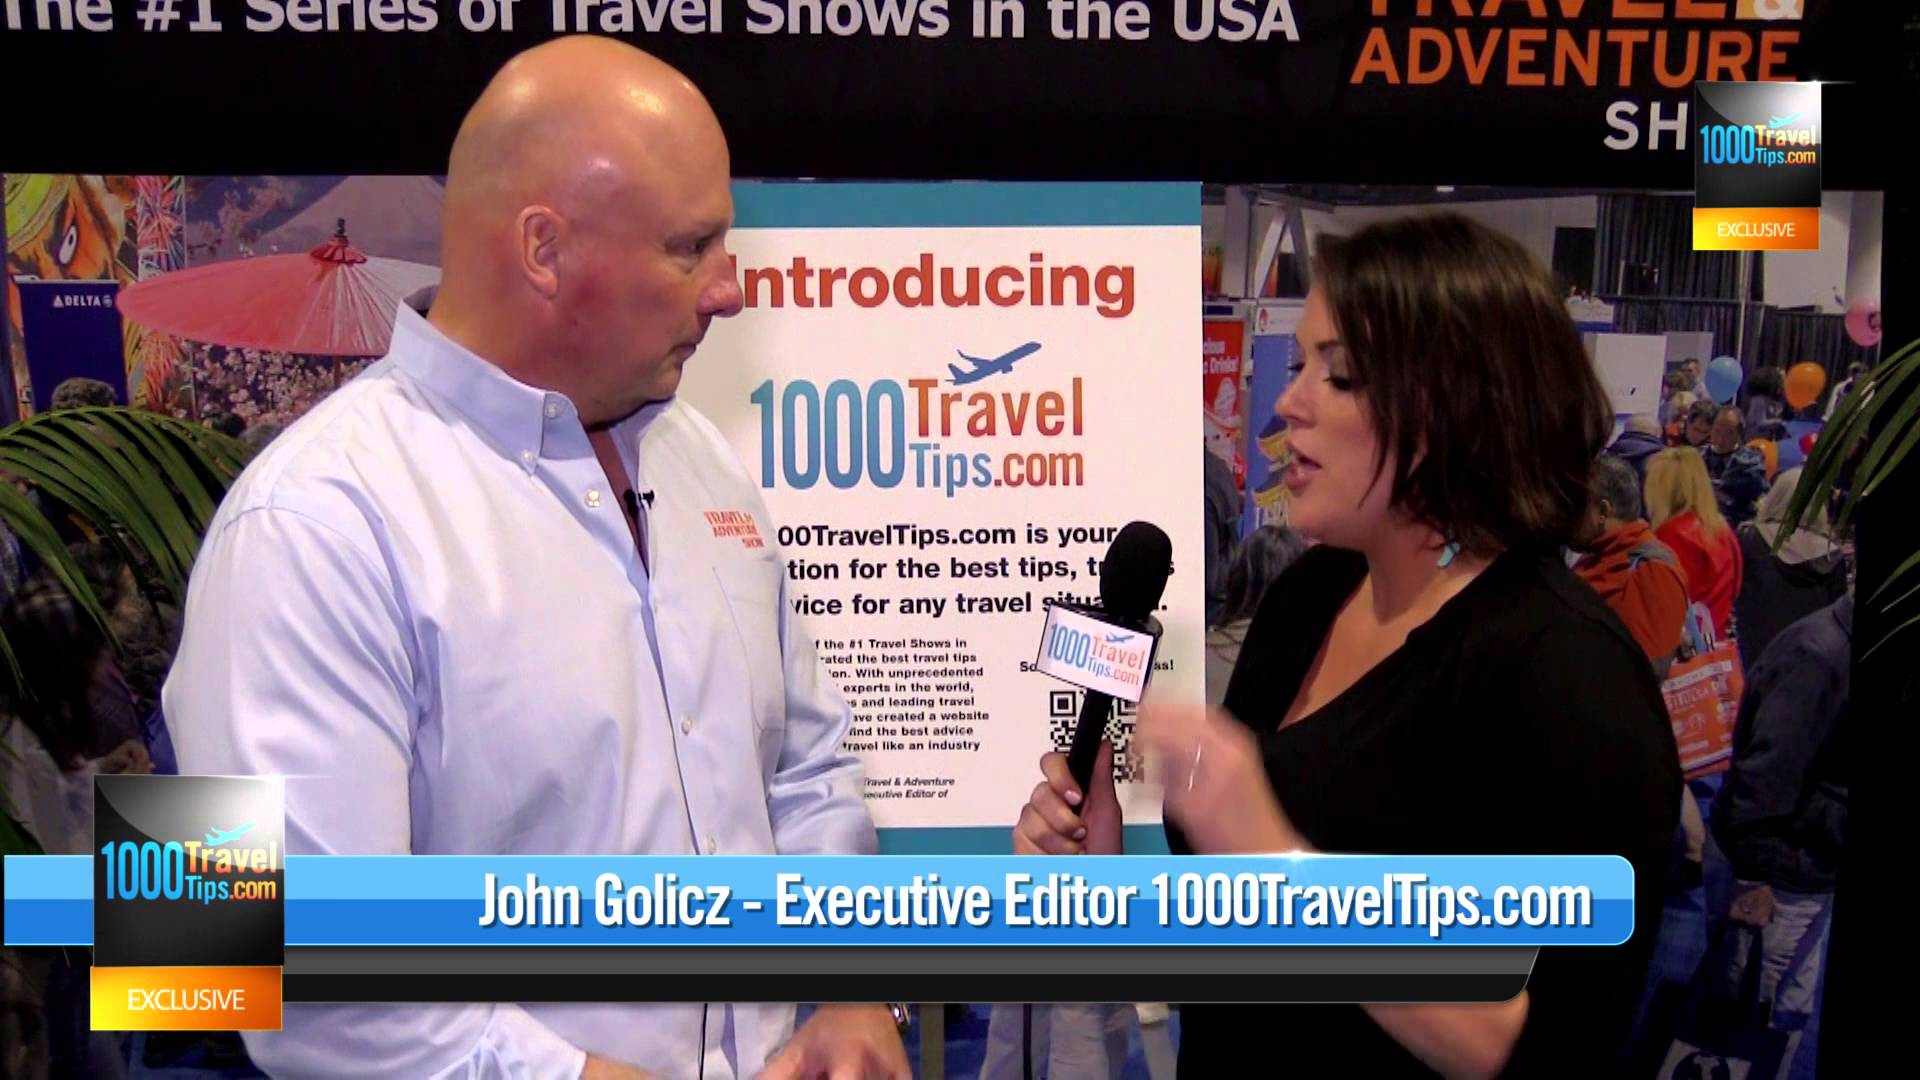 John Golicz's Tips on Tech and Travel